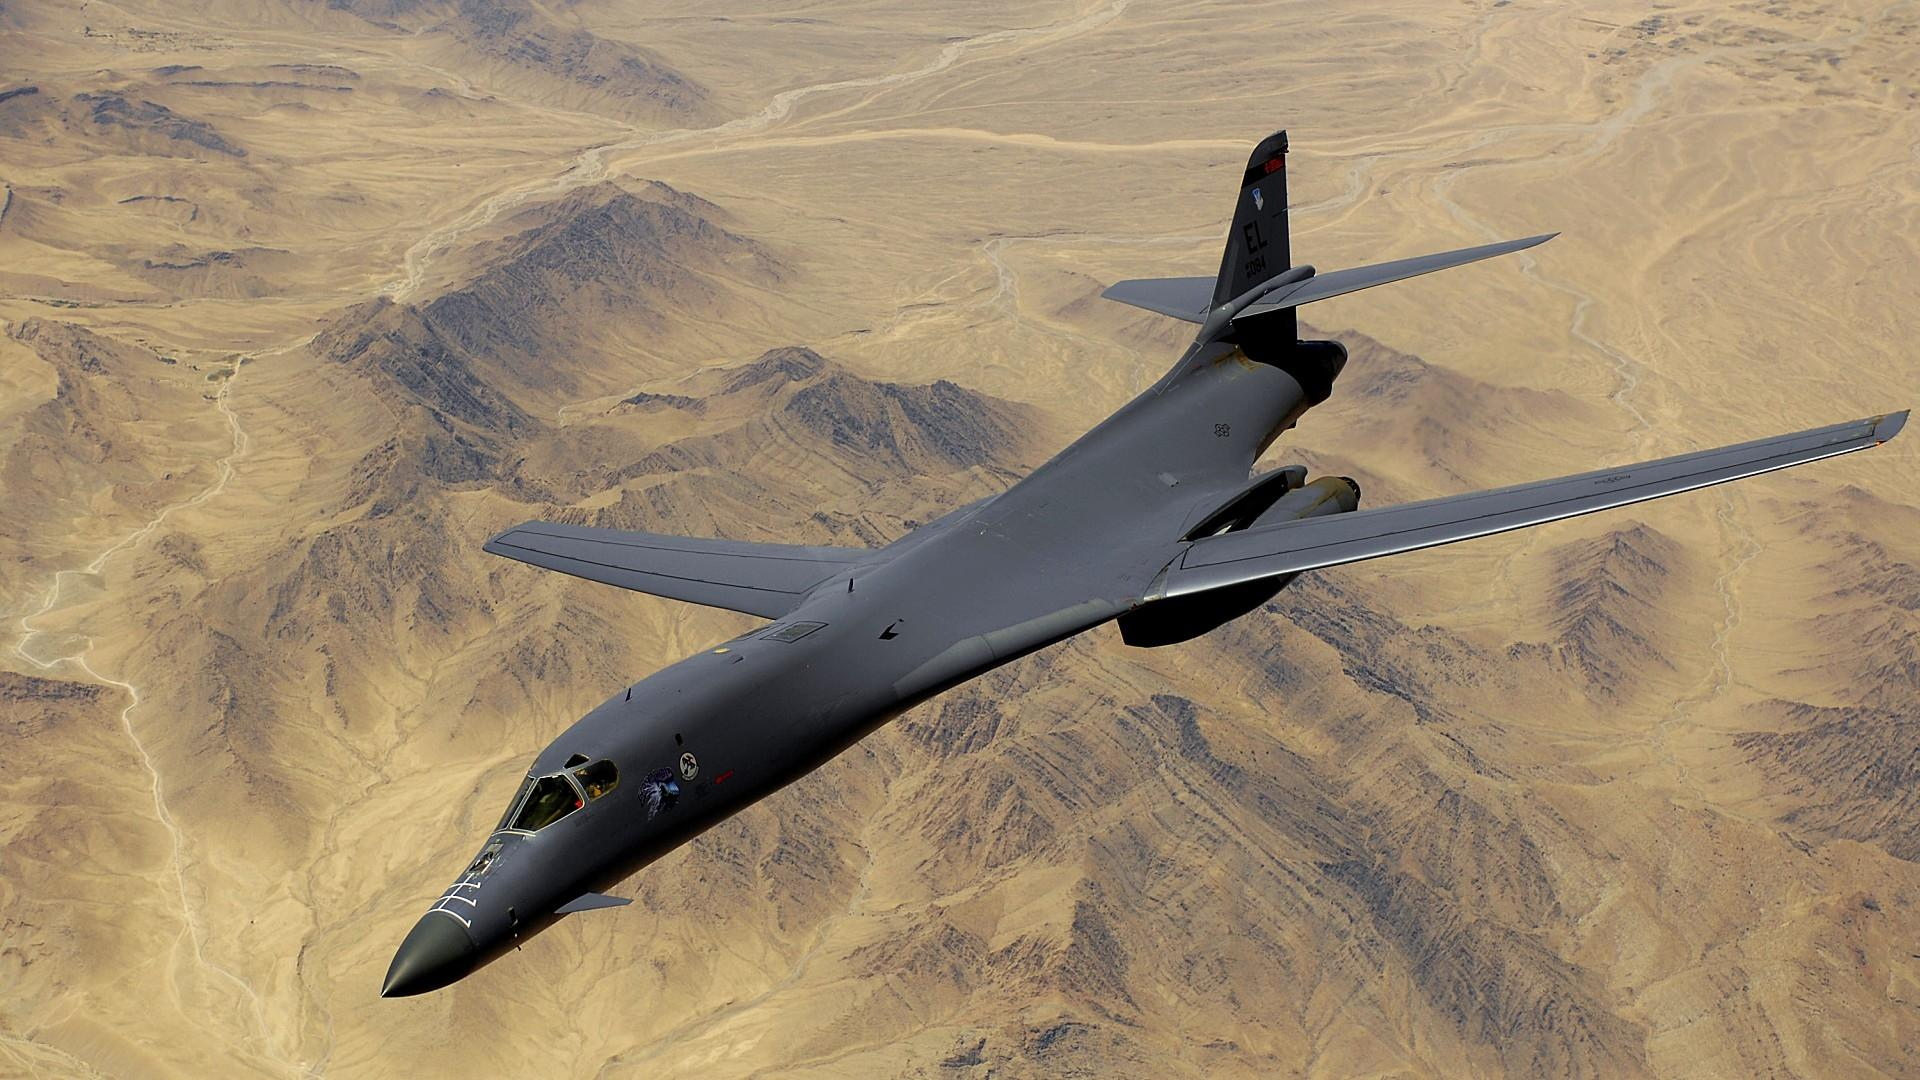 Rockwell B-1 Lancer wallpapers HD quality